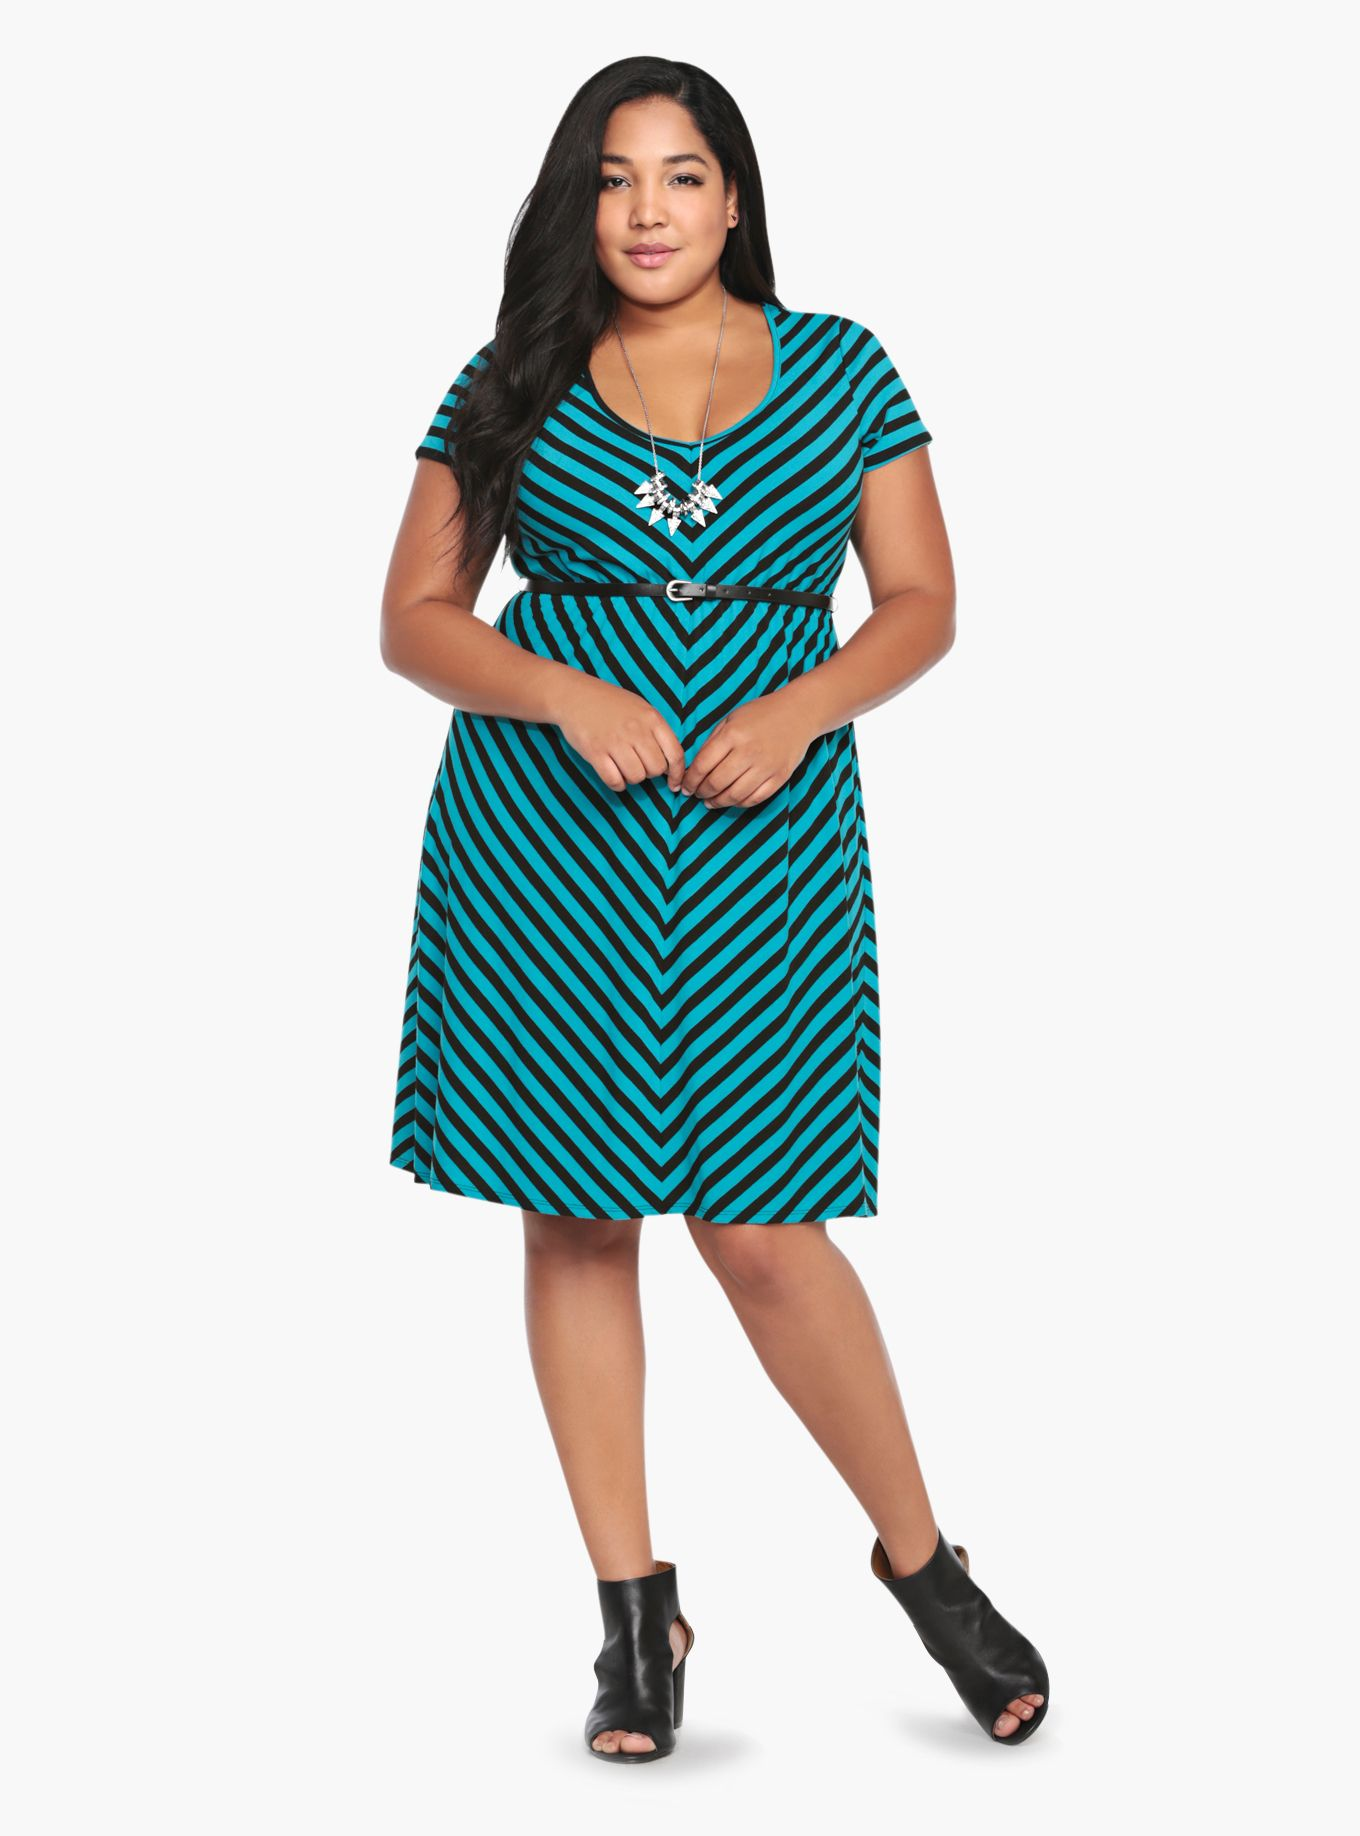 Chevron Striped Belted Dress | Torrid | My Style | Pinterest ...